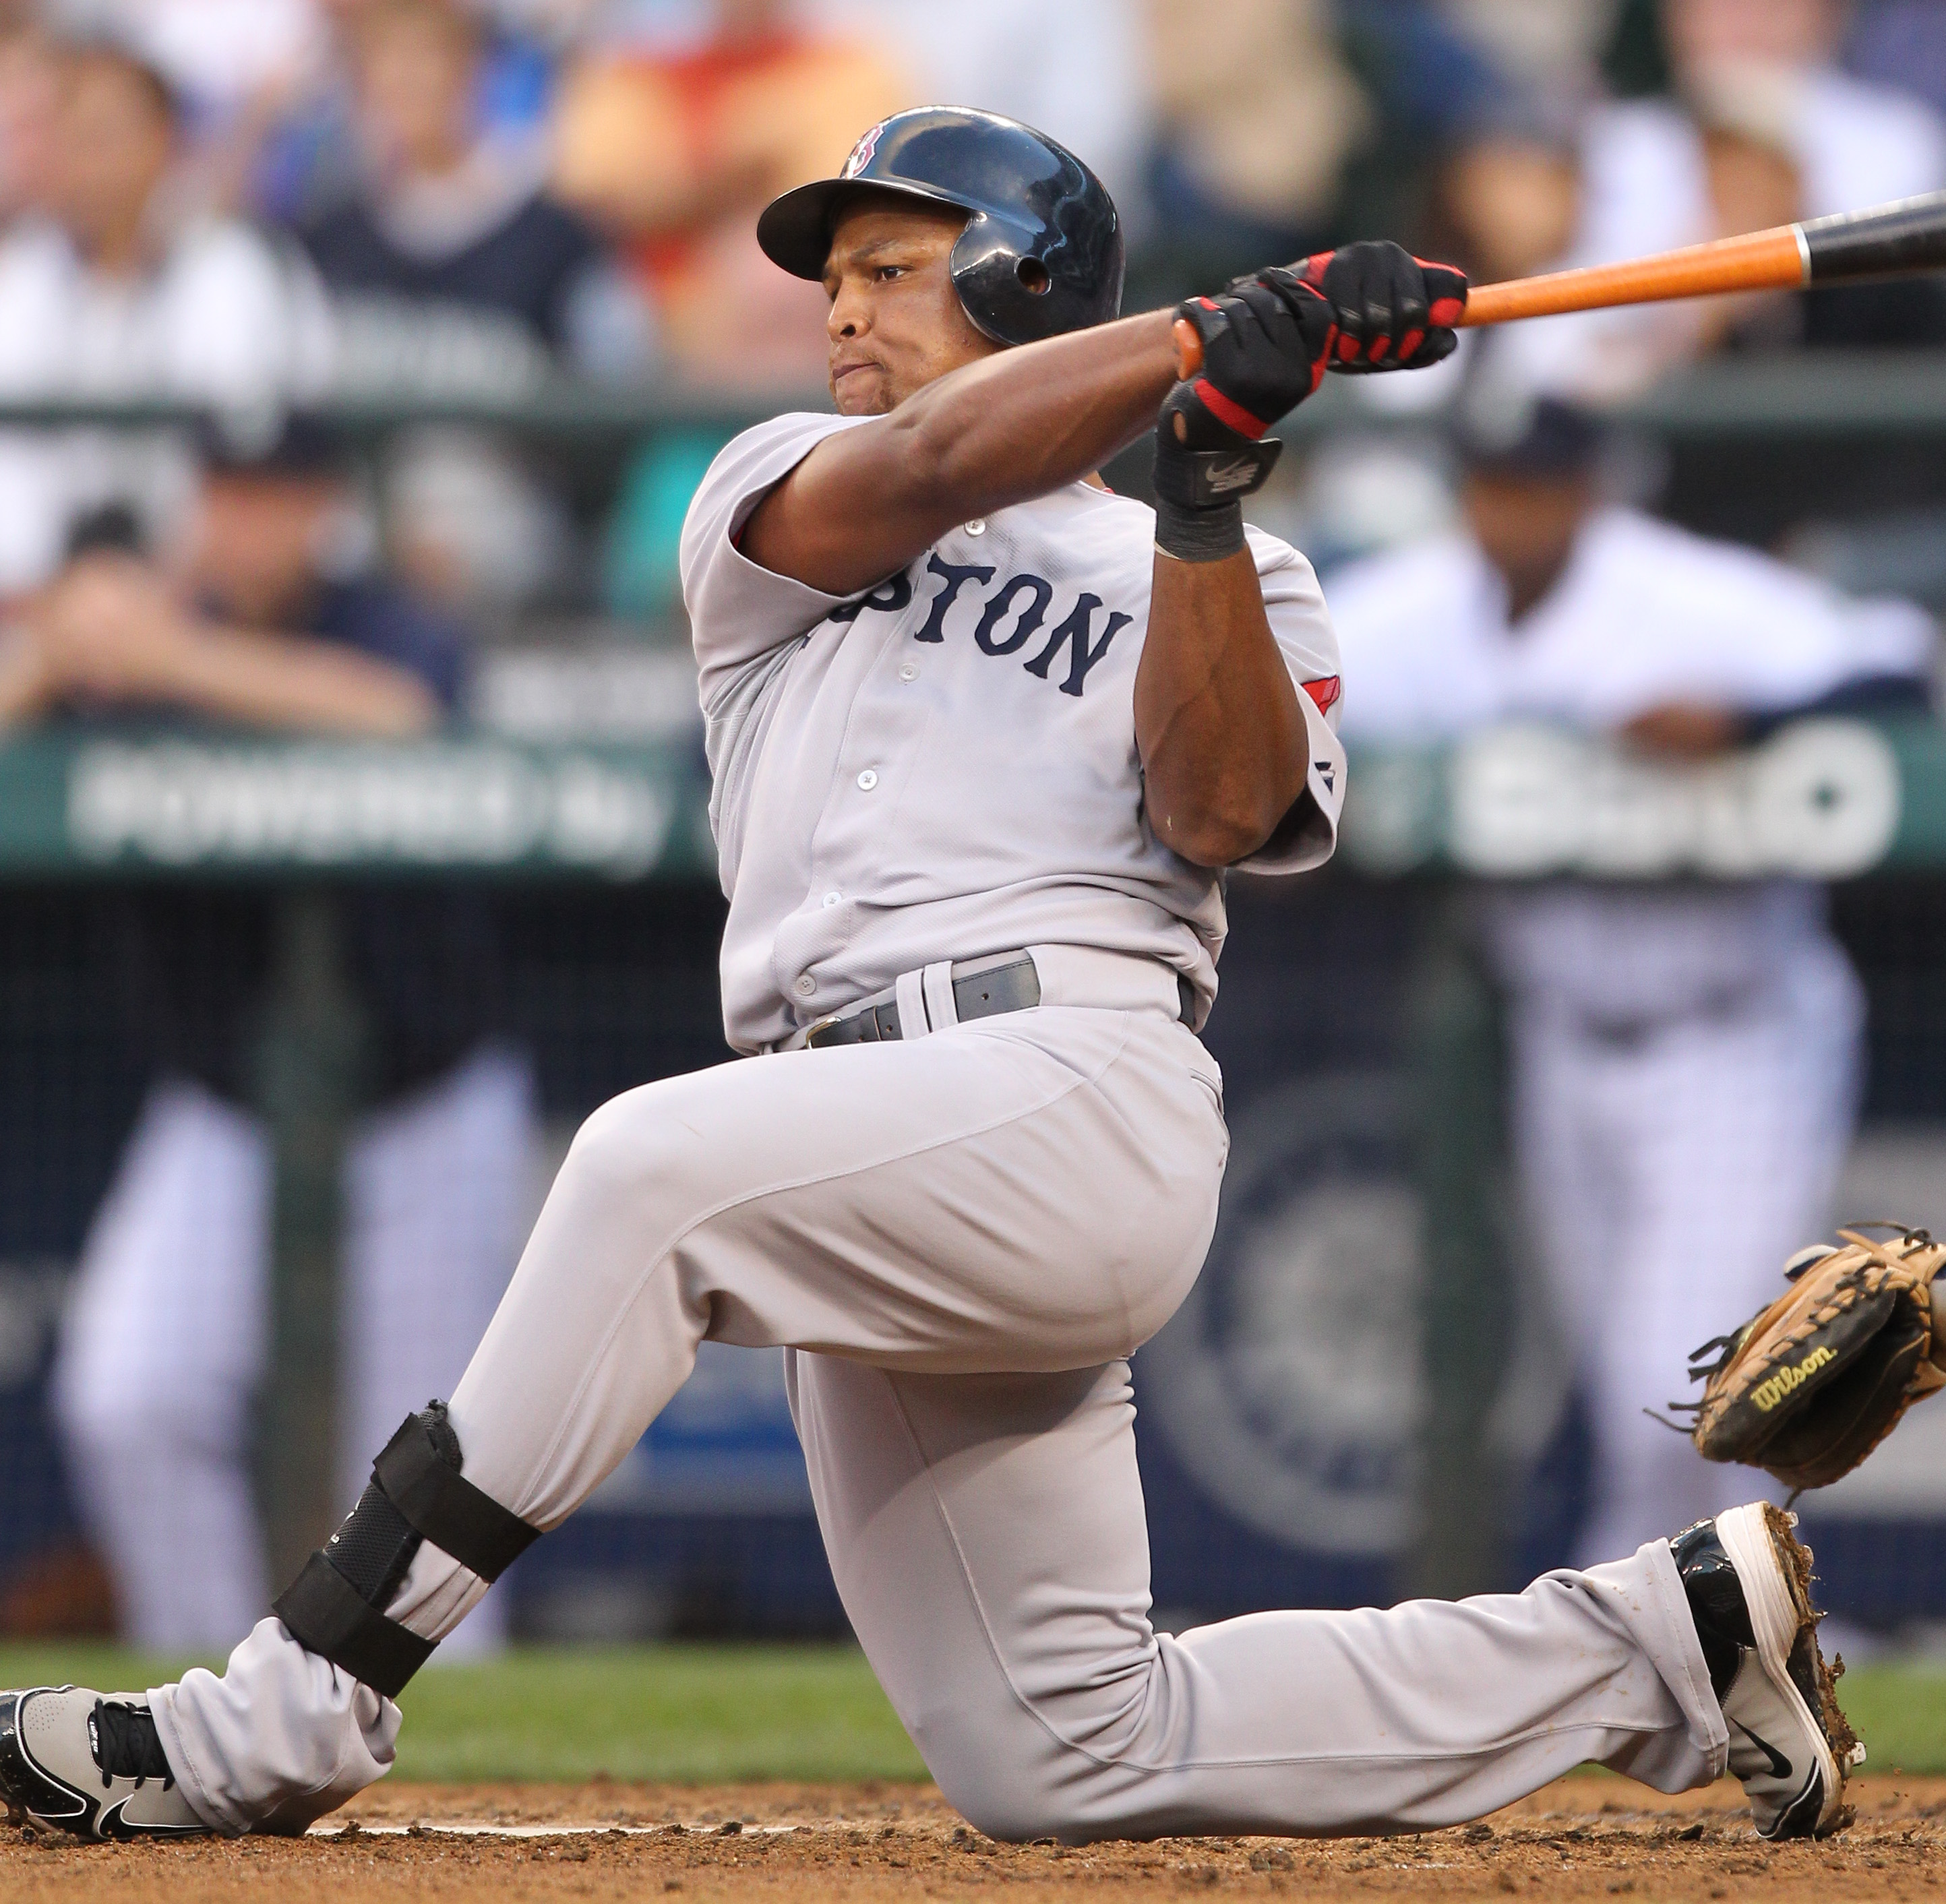 SEATTLE - JULY 22: Adrian Beltre #29 of the Boston Red Sox bats against the Seattle Mariners at Safeco Field on July 22, 2010 in Seattle, Washington. (Photo by Otto Greule Jr/Getty Images)